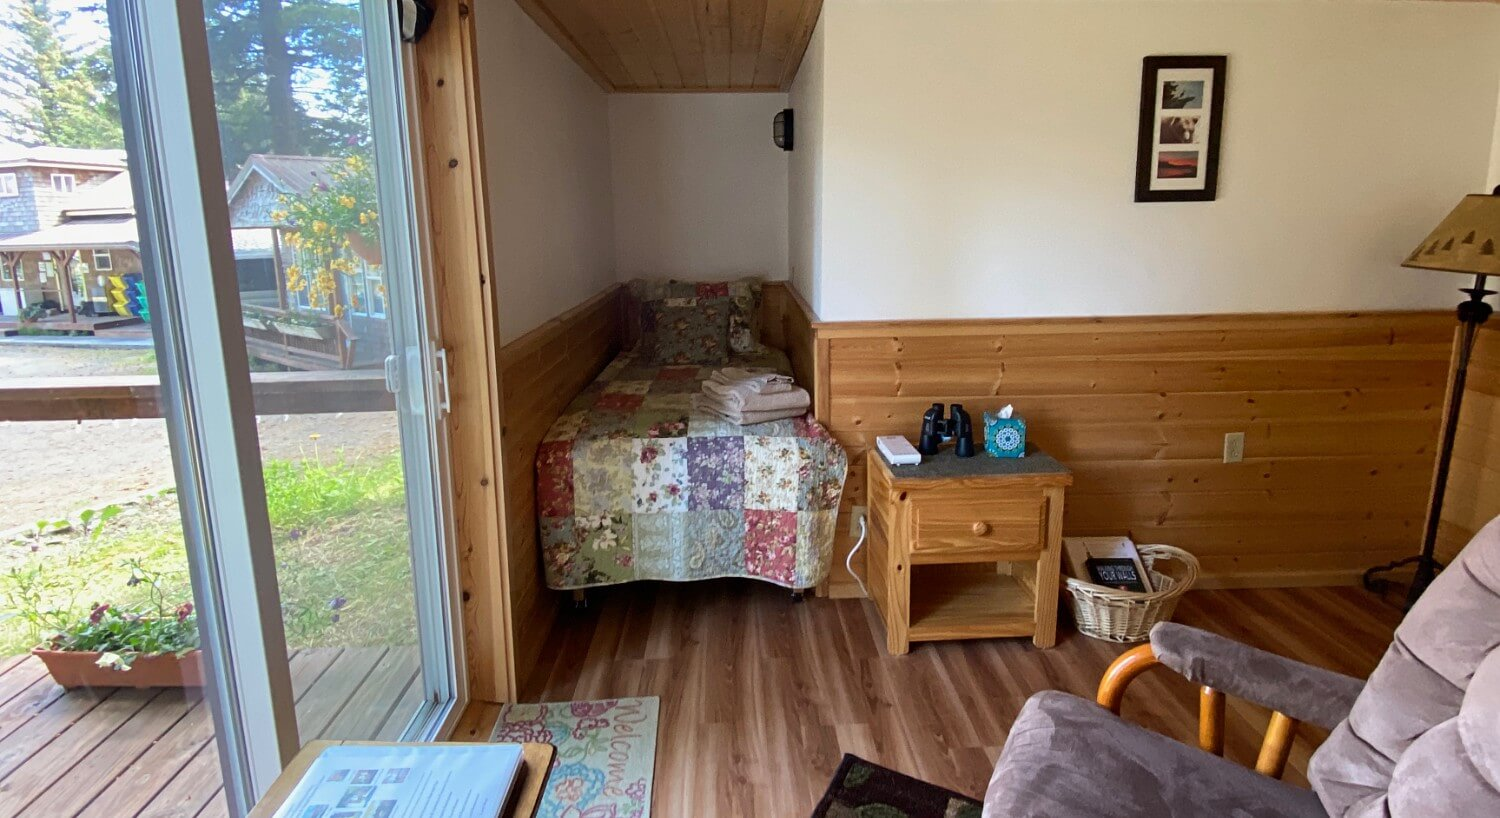 Open room with medium wood rustic paneling to chair rail with cream walls, hardwood floor, large sliding glass door and bed with quilt tucked away and nook of room